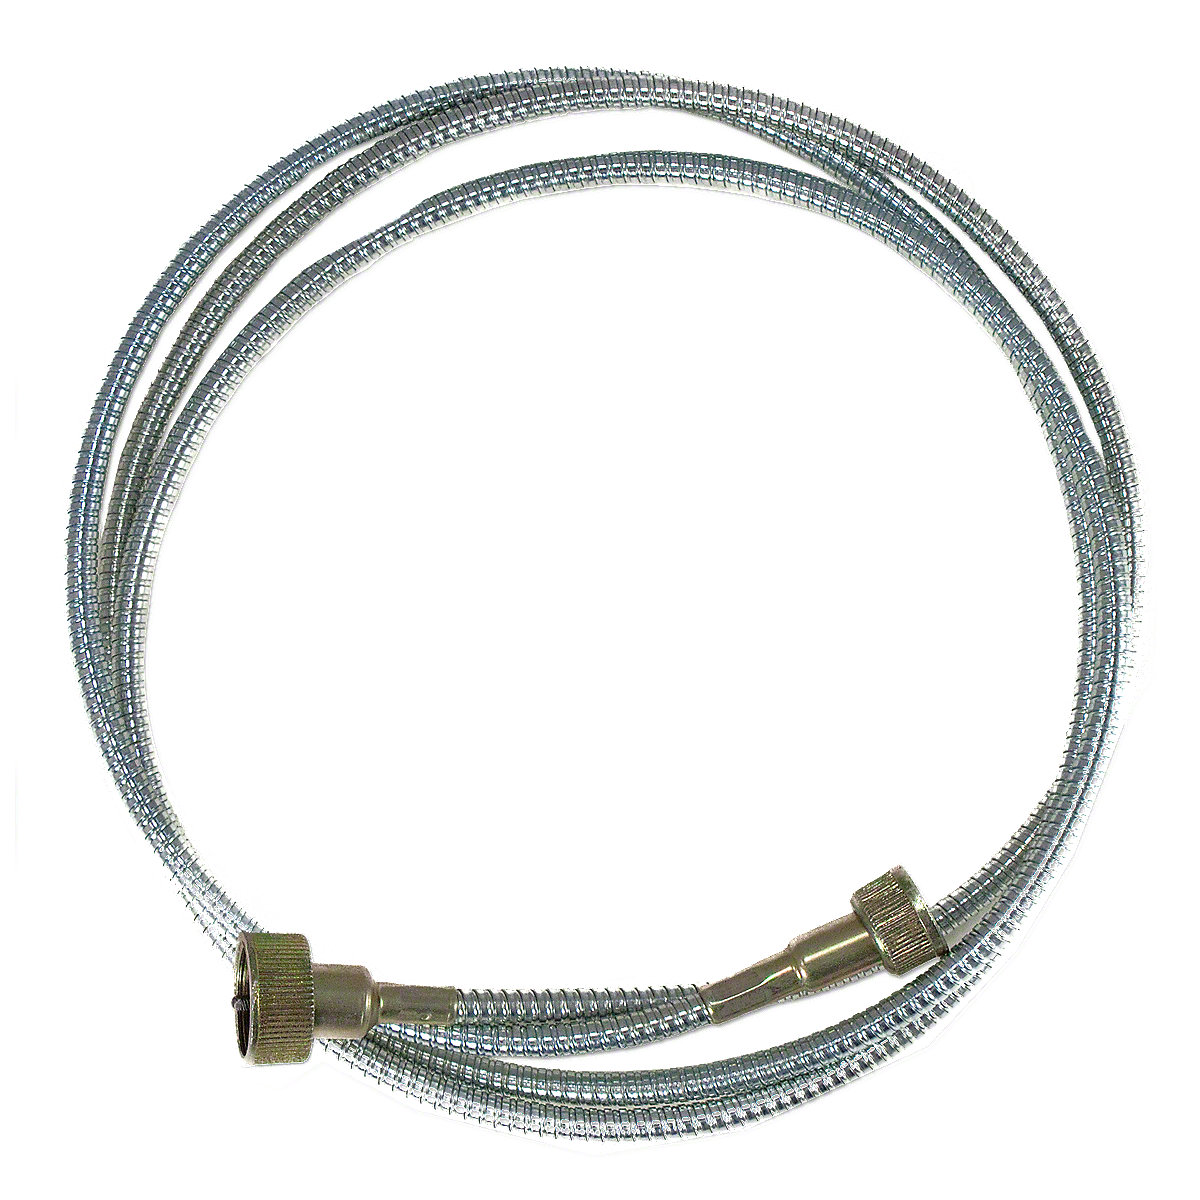 Tachometer Cable For Massey Ferguson Replaces PN#: 544198m91.